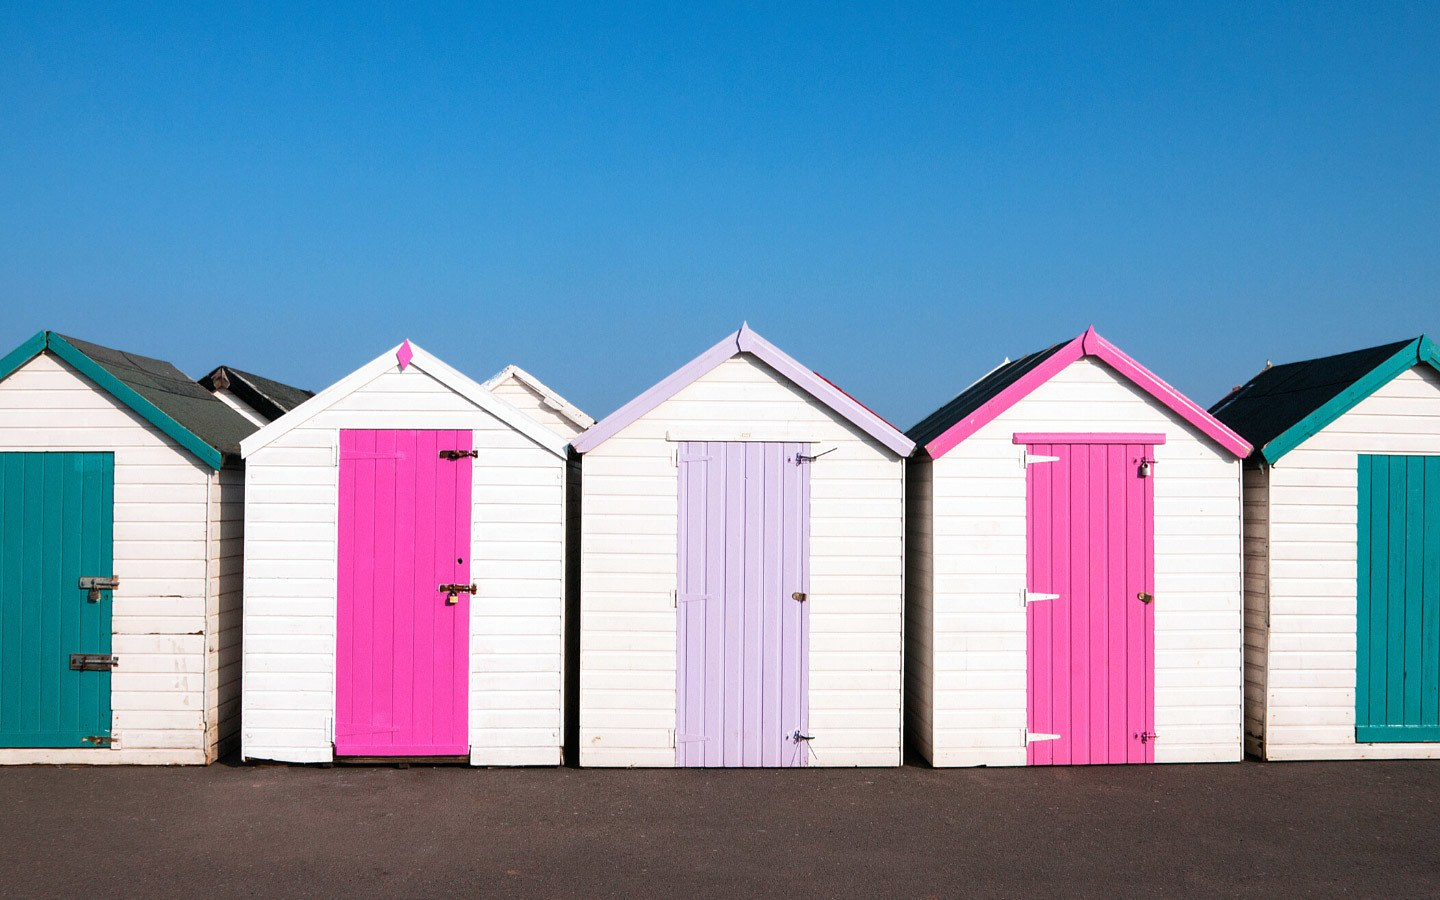 Colourful beach huts in Paignton, Devon